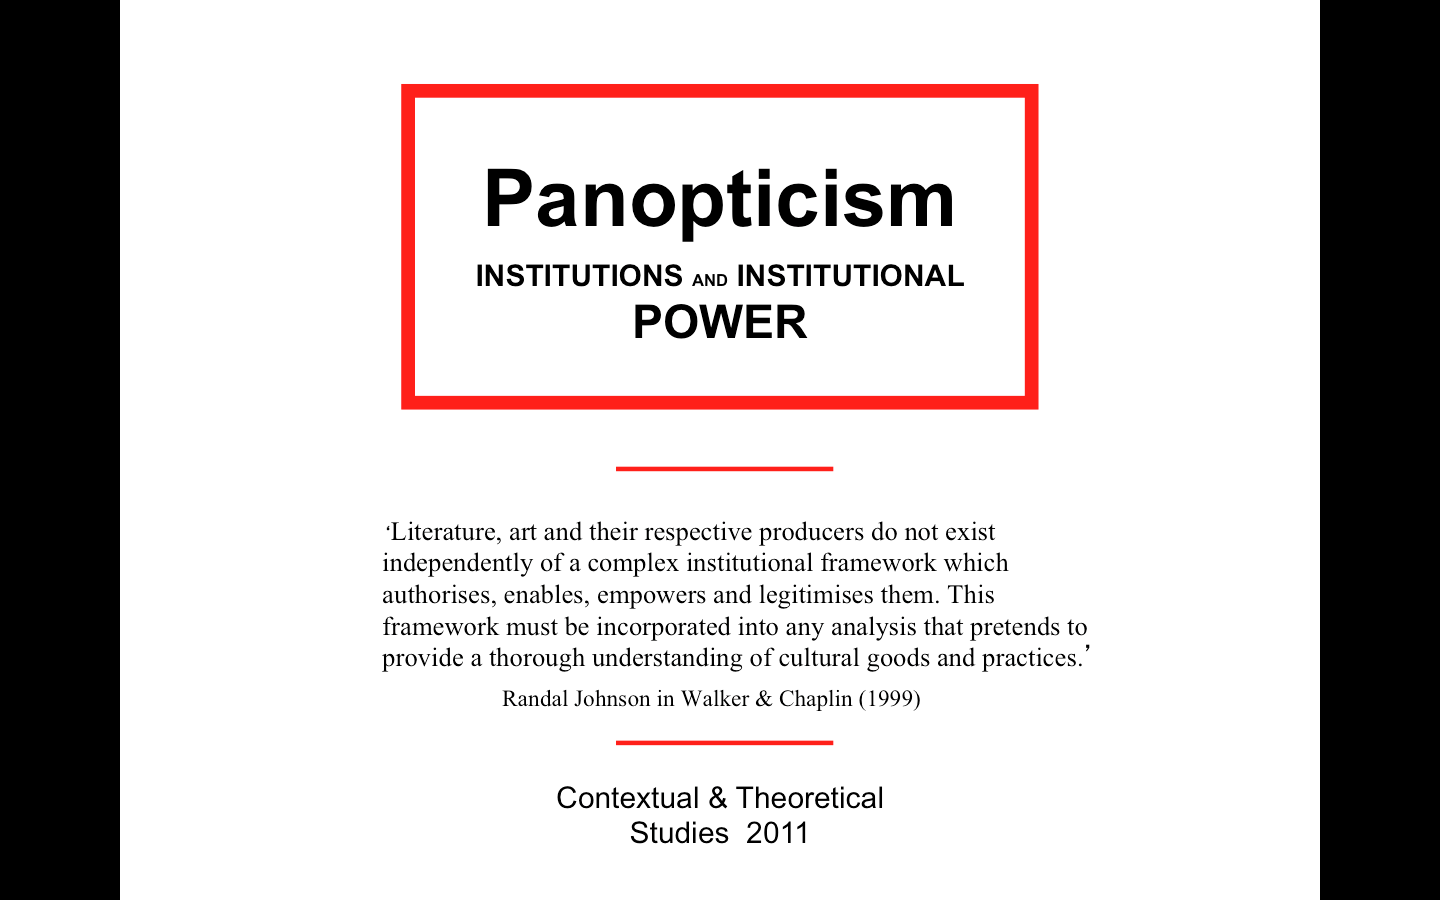 michel foucault s panopticism essay example Michel foucault's panopticism shows that society is under surveillance the panopticon represents the way in which discipline and punishment work in modern society, where it shows how the processes of observation and examination function.